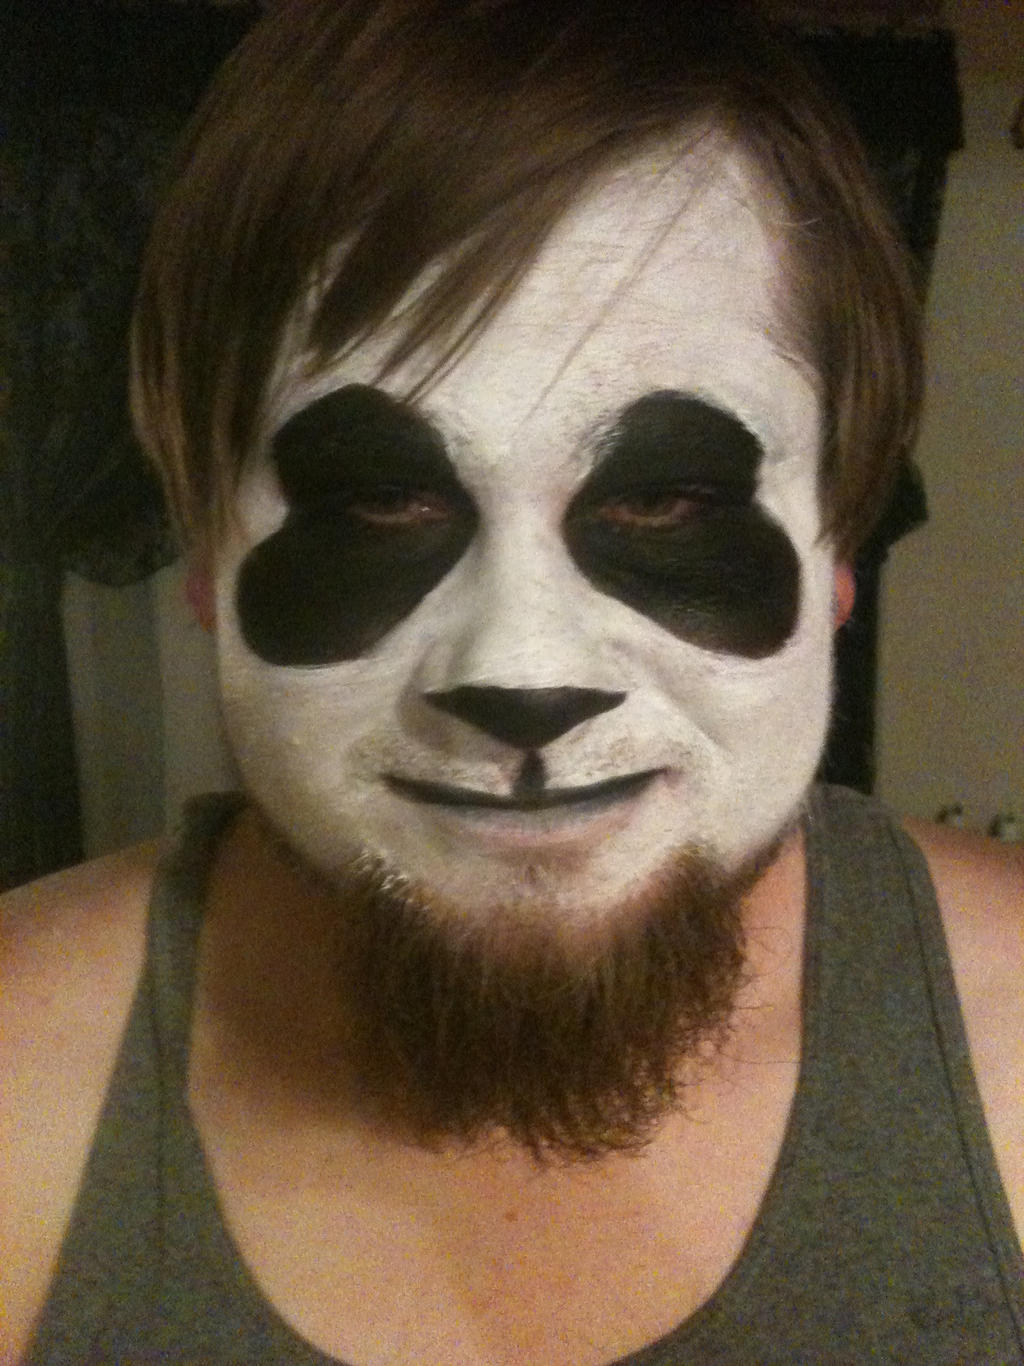 Panda face paint by red-string-of-fate on DeviantArt